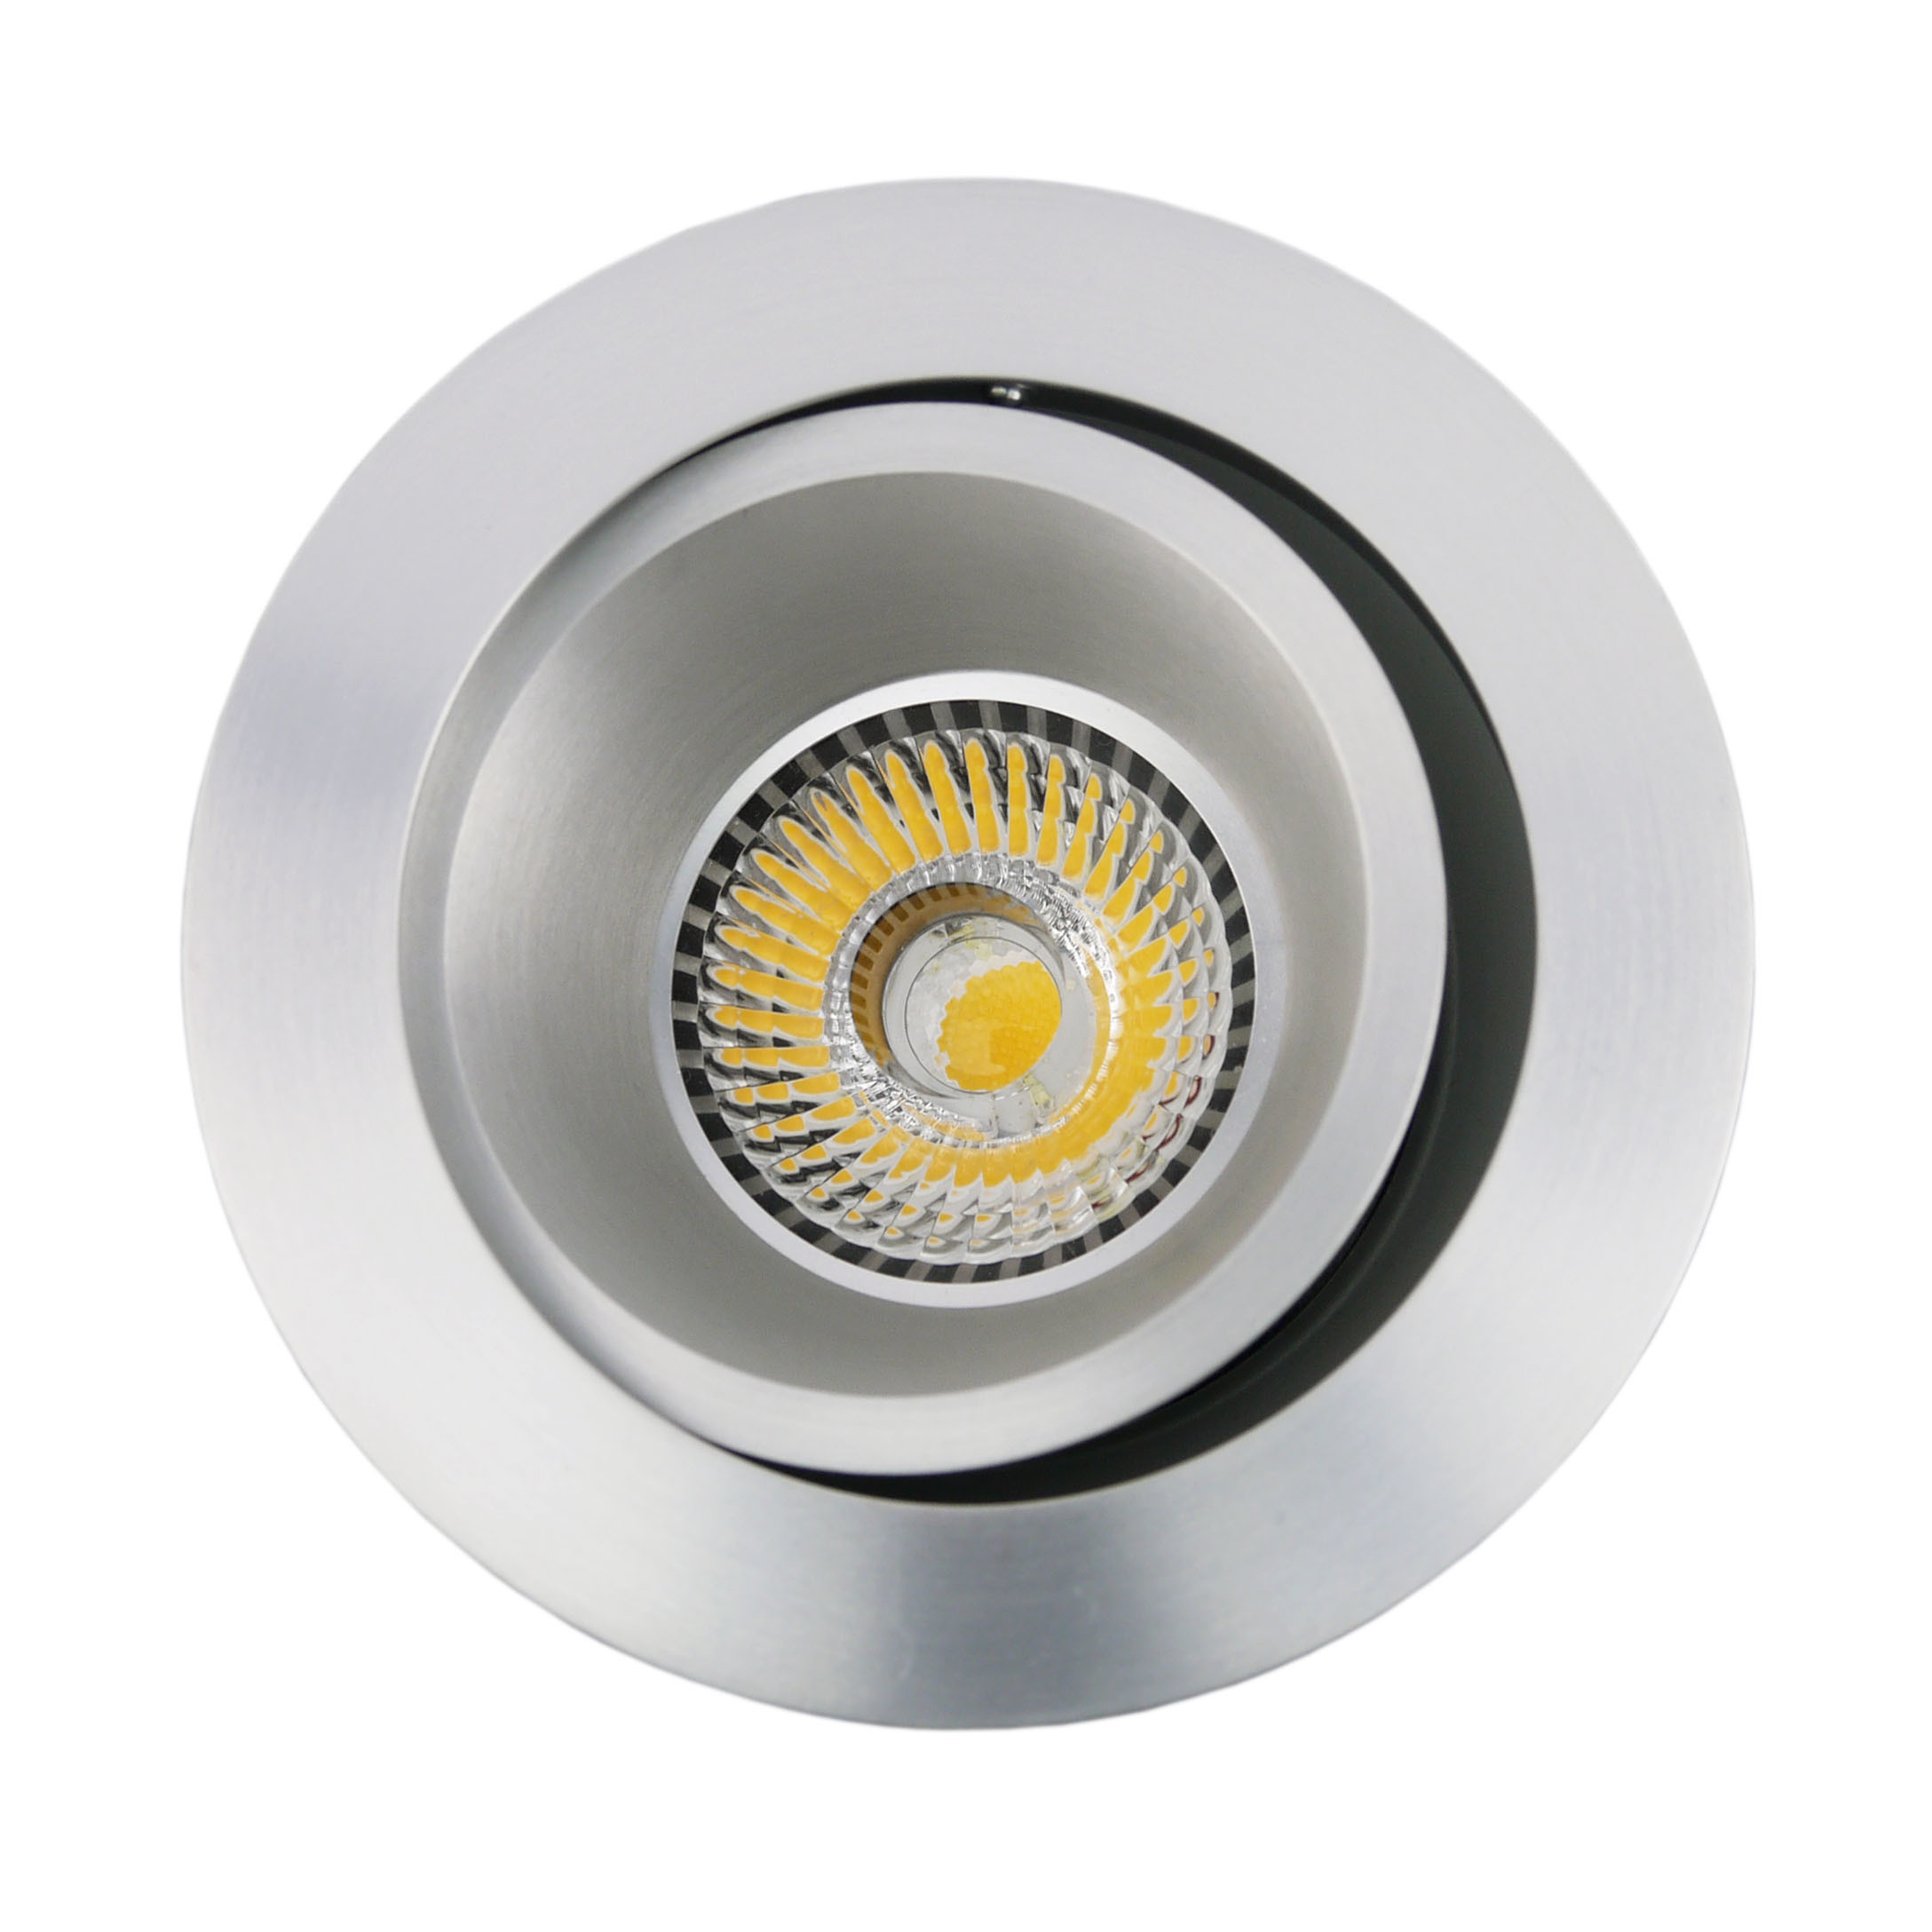 Lathe Aluminum GU10 MR16 Round Tilt Recessed LED Spotlight (LT2204B)